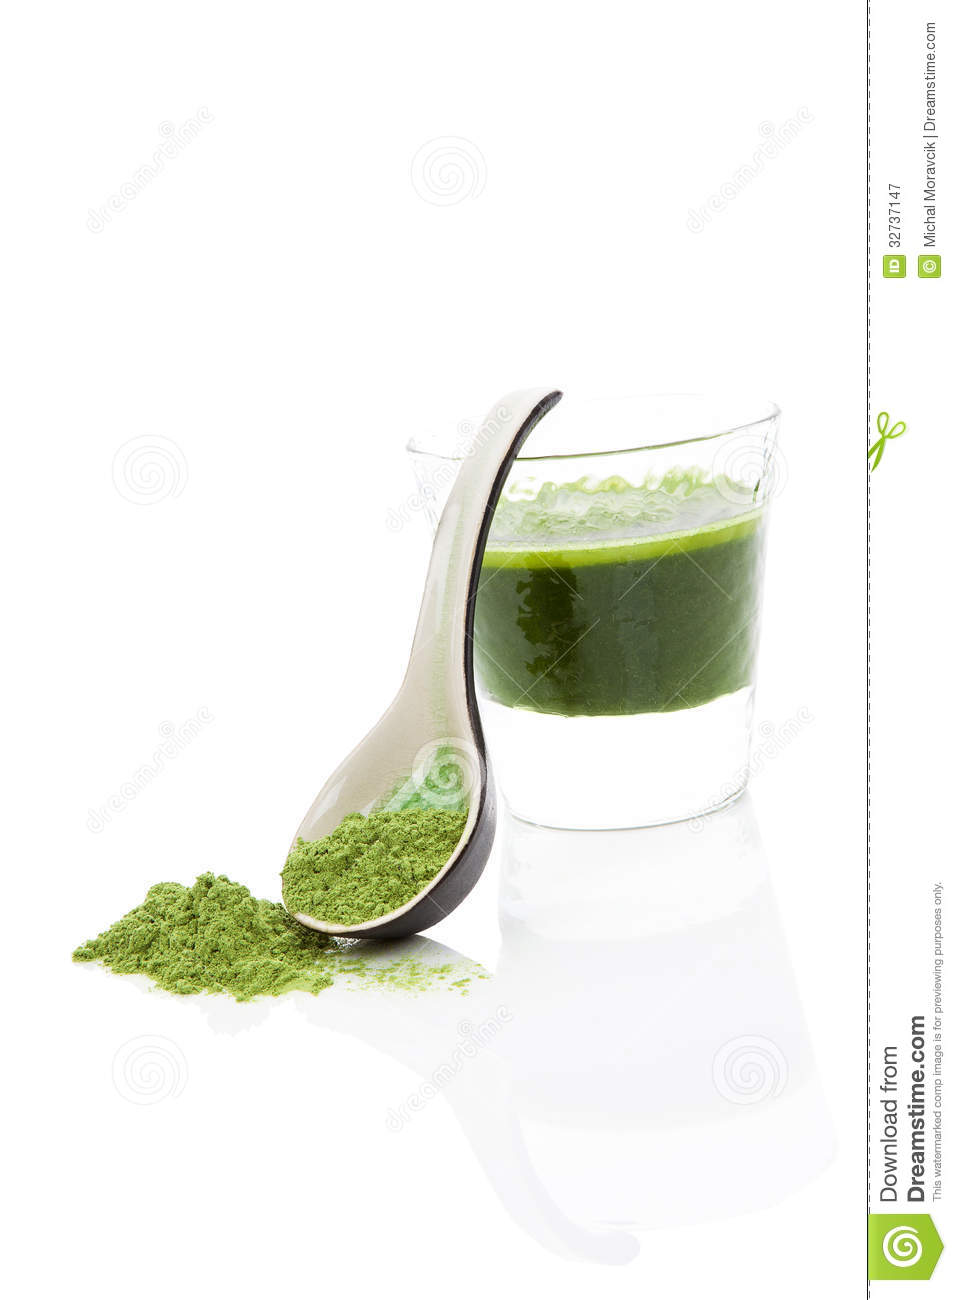 How To Drink Wheatgrass Powder Juice